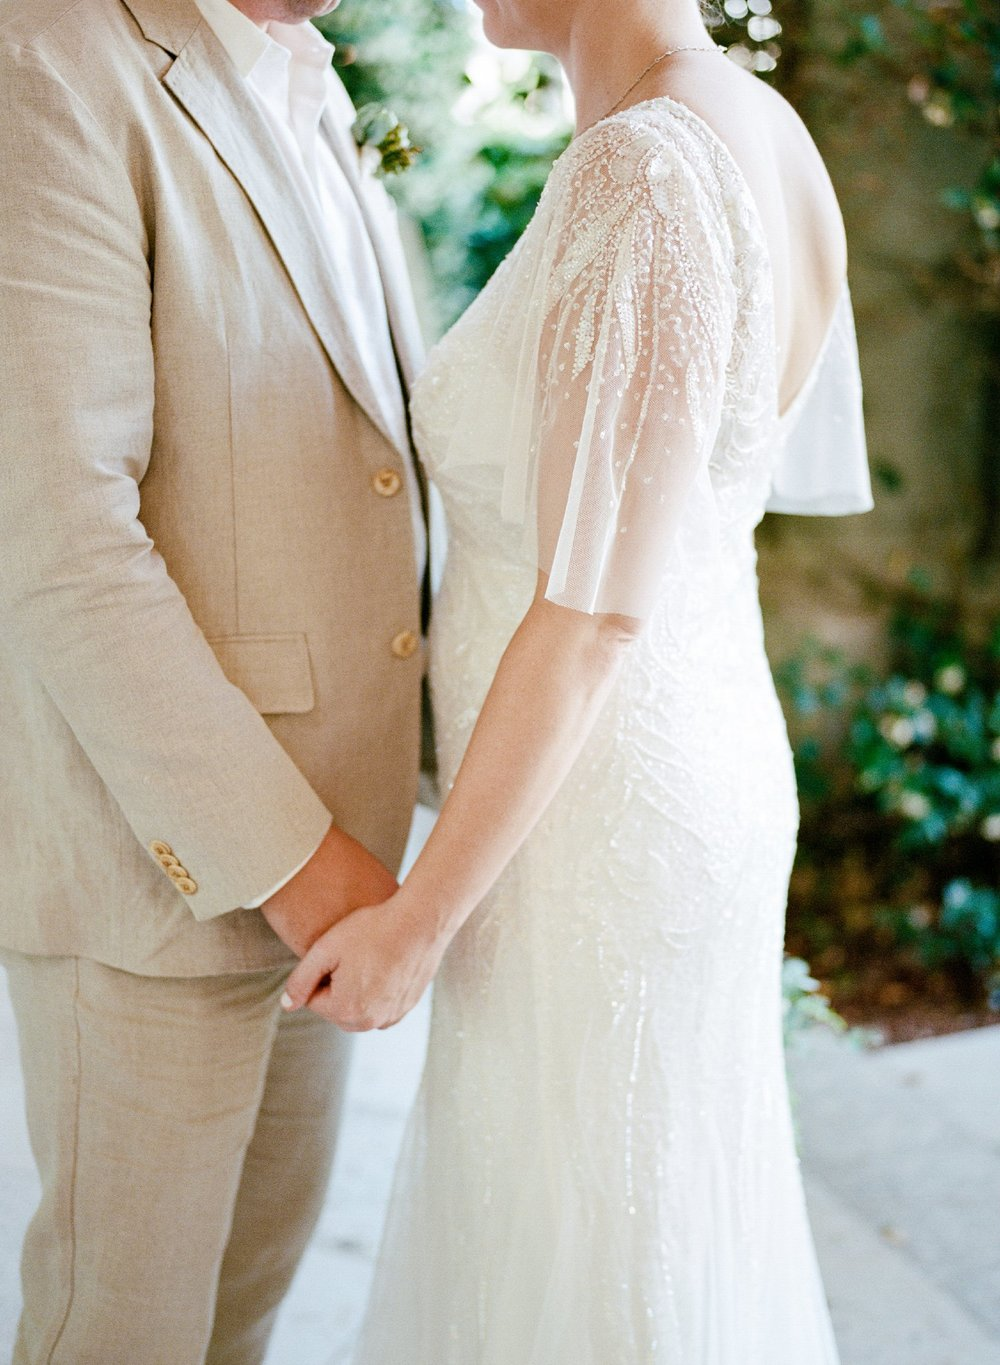 ritz carlton amelia island wedding photographer shannon griffin photography_0018.jpg